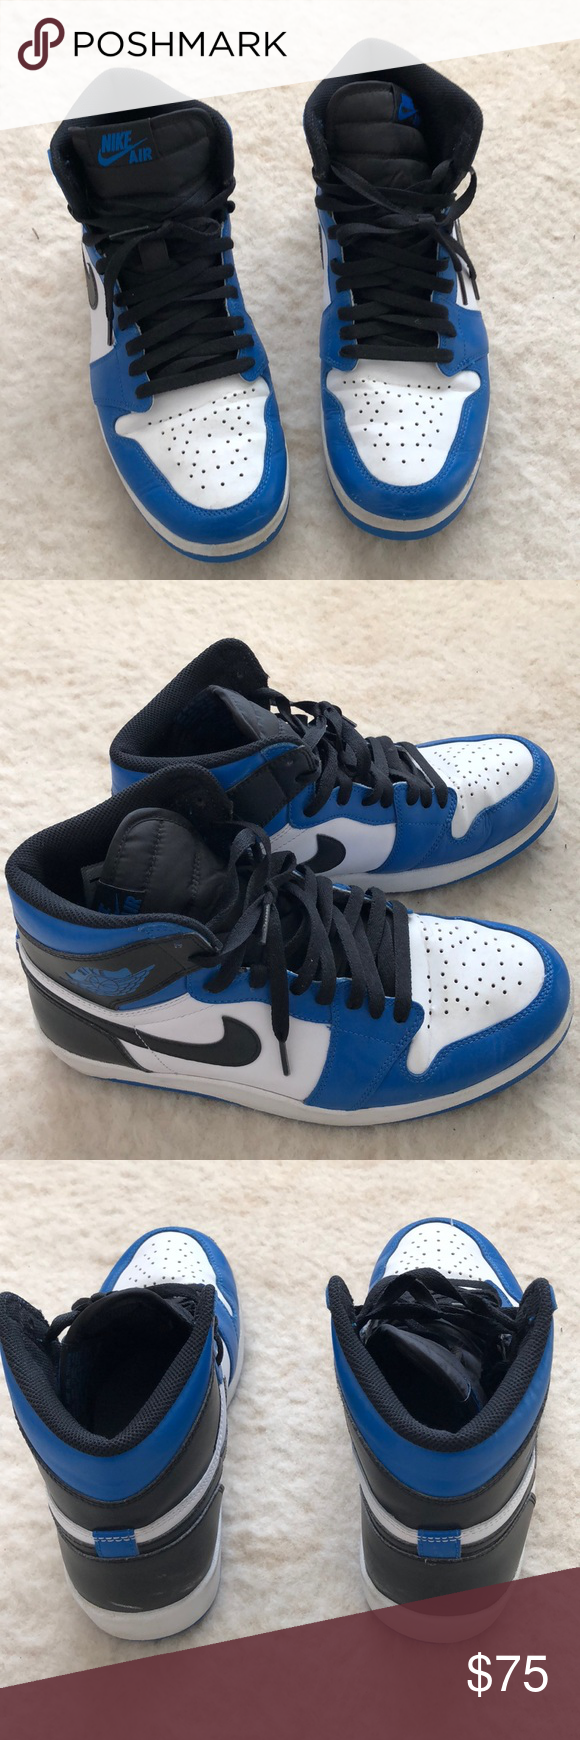 on sale 24d45 2a5f1 Nike Air Jordan 1 In good condition. Has creases and small scuffs as shown  but otherwise still good. Nike Shoes Sneakers